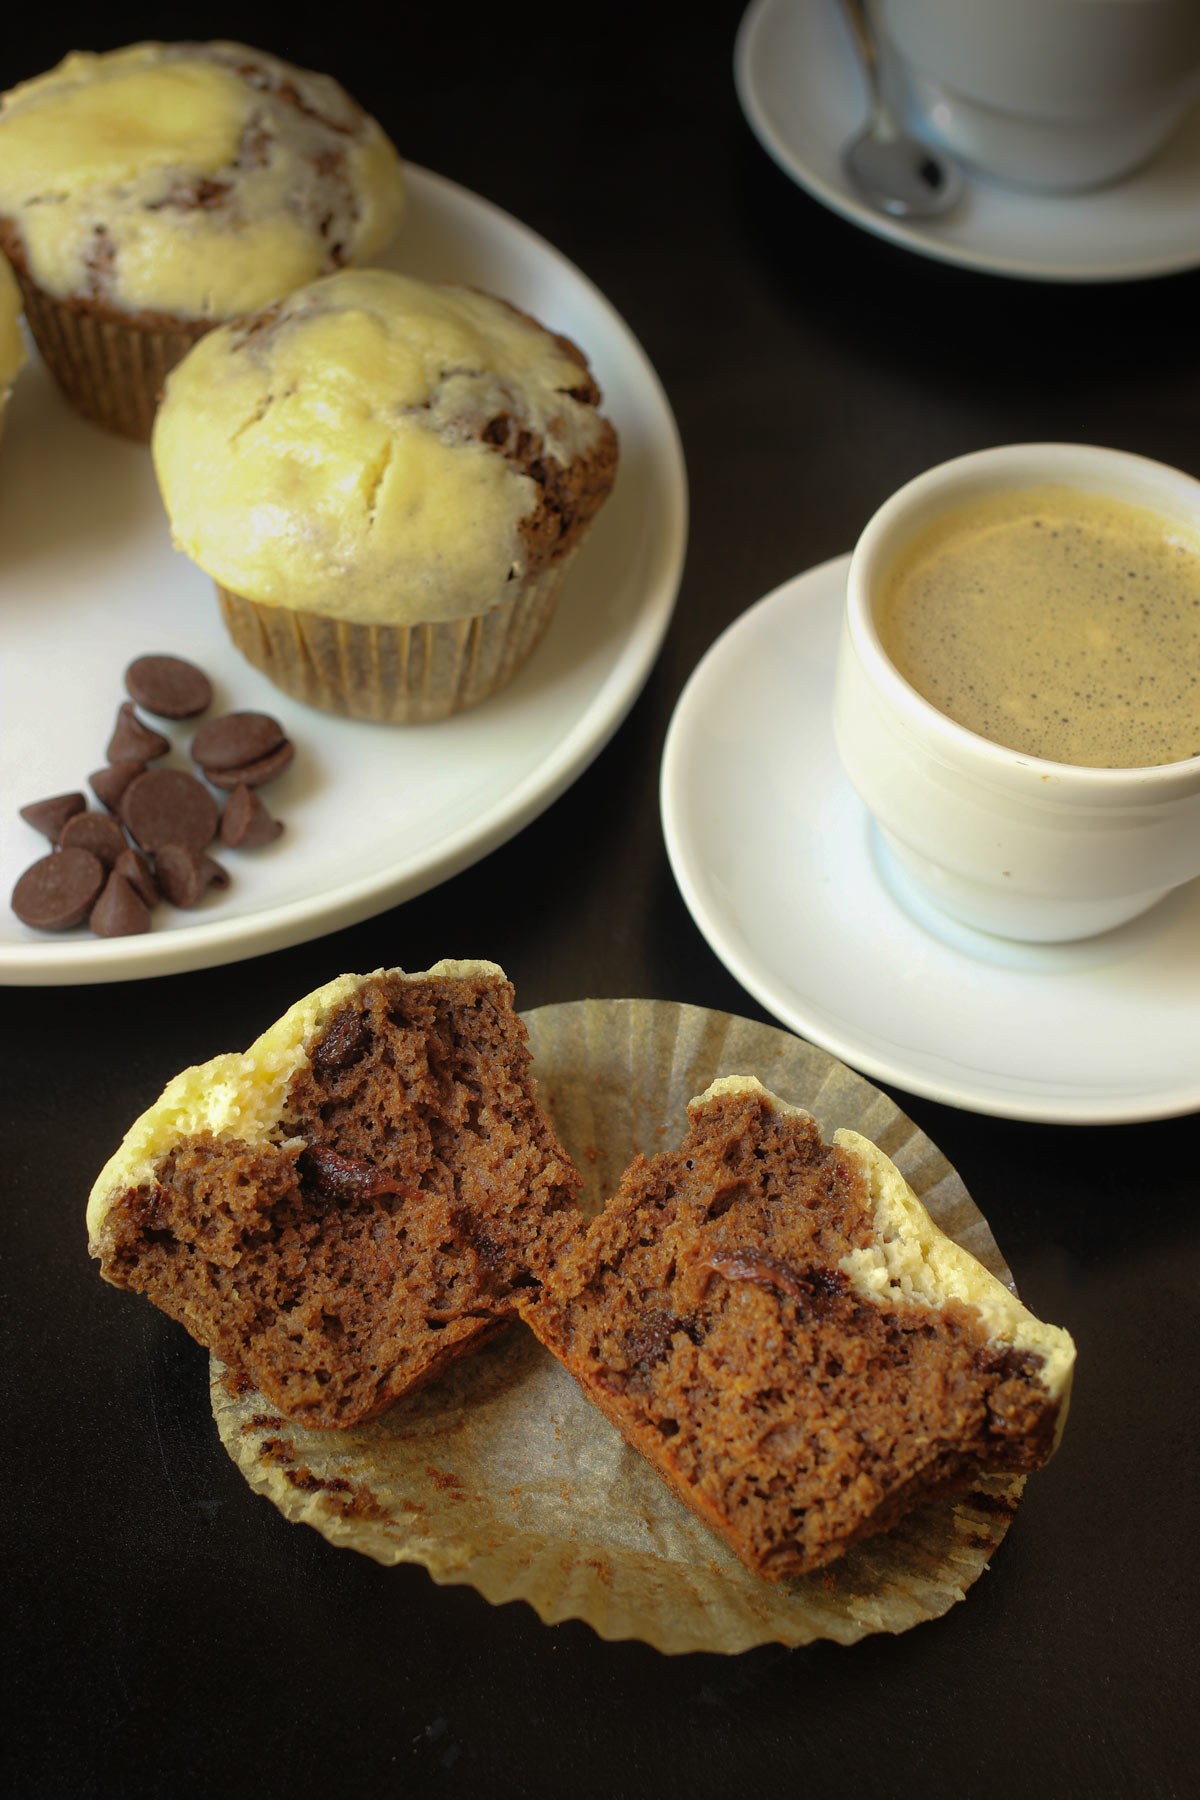 split chocolate cream cheese muffin on its wrapper next to espresso and plate of muffins.